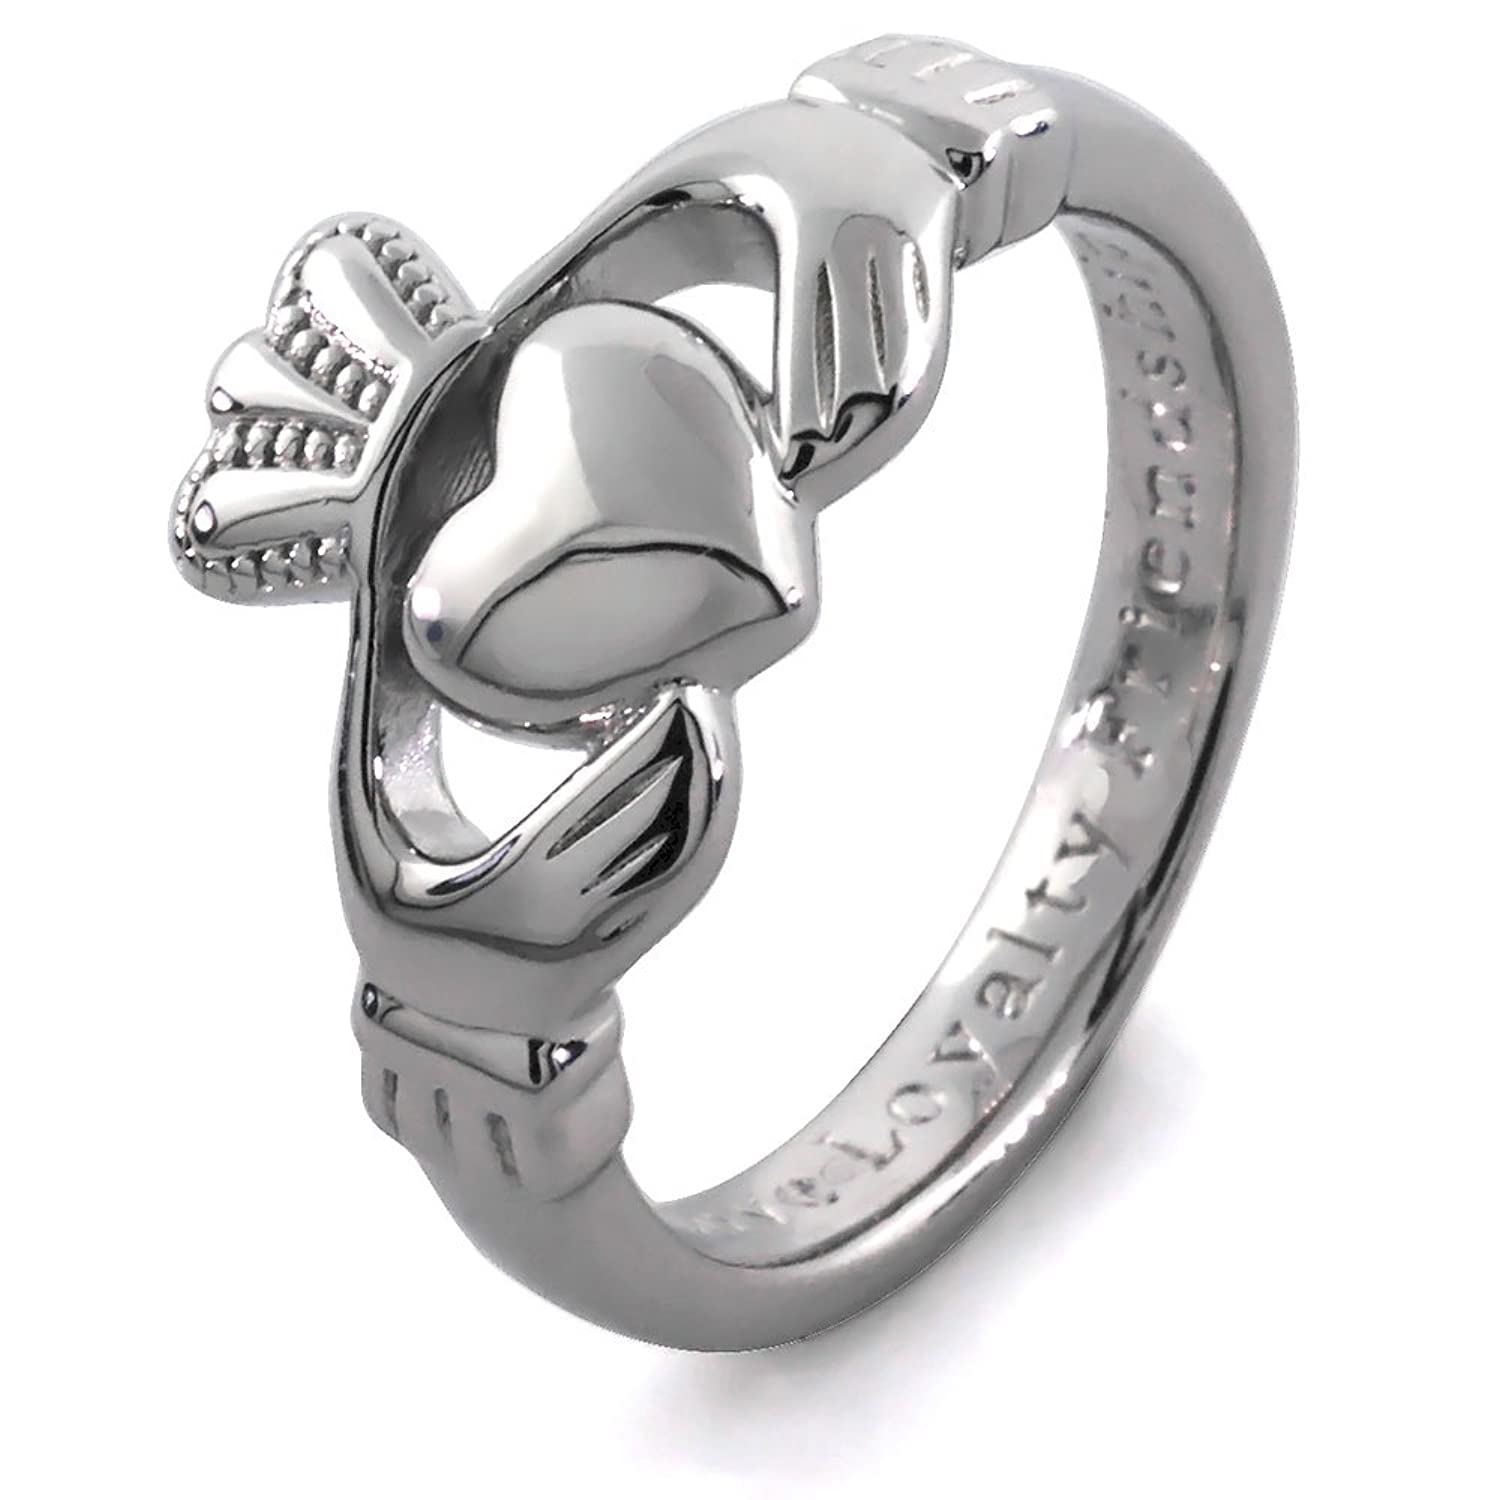 claddagh meanings exploring rings and fullxfull il designs the fashion of distinctive traditional wedding irish mens